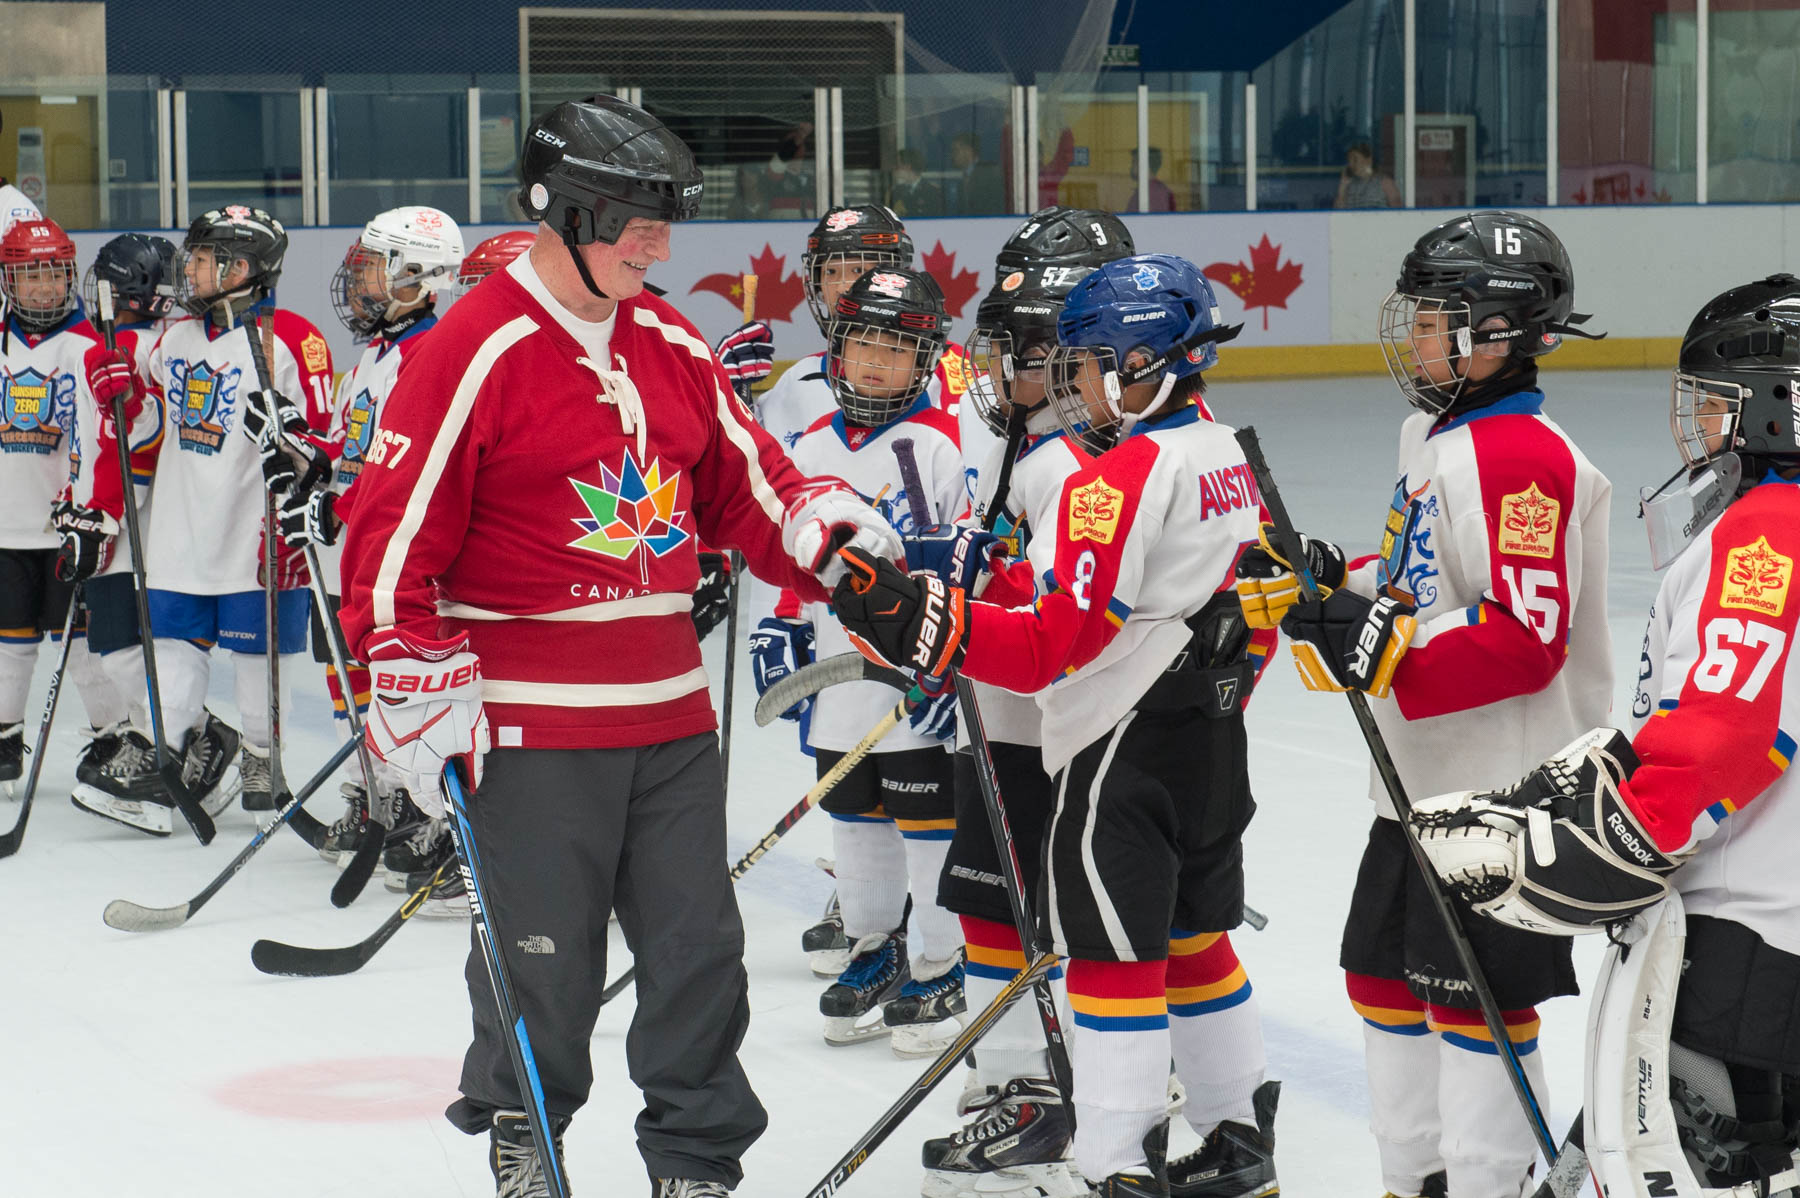 The event provided the Governor General and Canadian delegates with an opportunity to meet with Chinese youth interested in playing hockey, with women players from the HC Kunlun Red Stars team, and with Canadians promoting hockey in China.